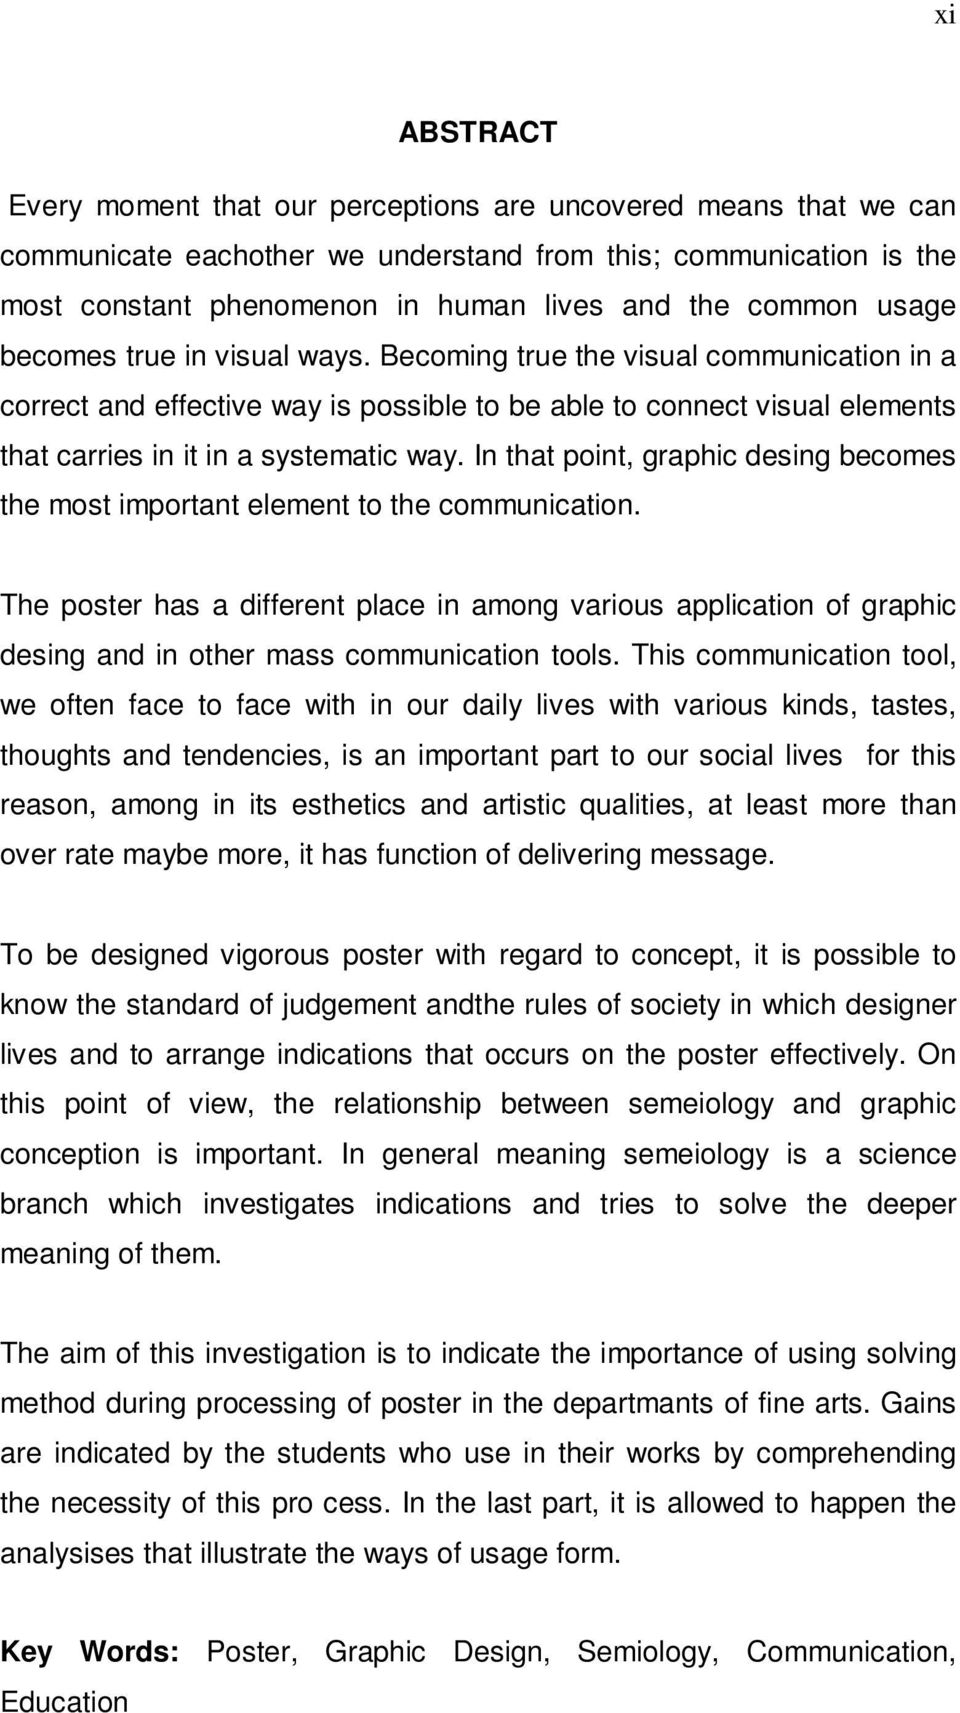 Becoming true the visual communication in a correct and effective way is possible to be able to connect visual elements that carries in it in a systematic way.